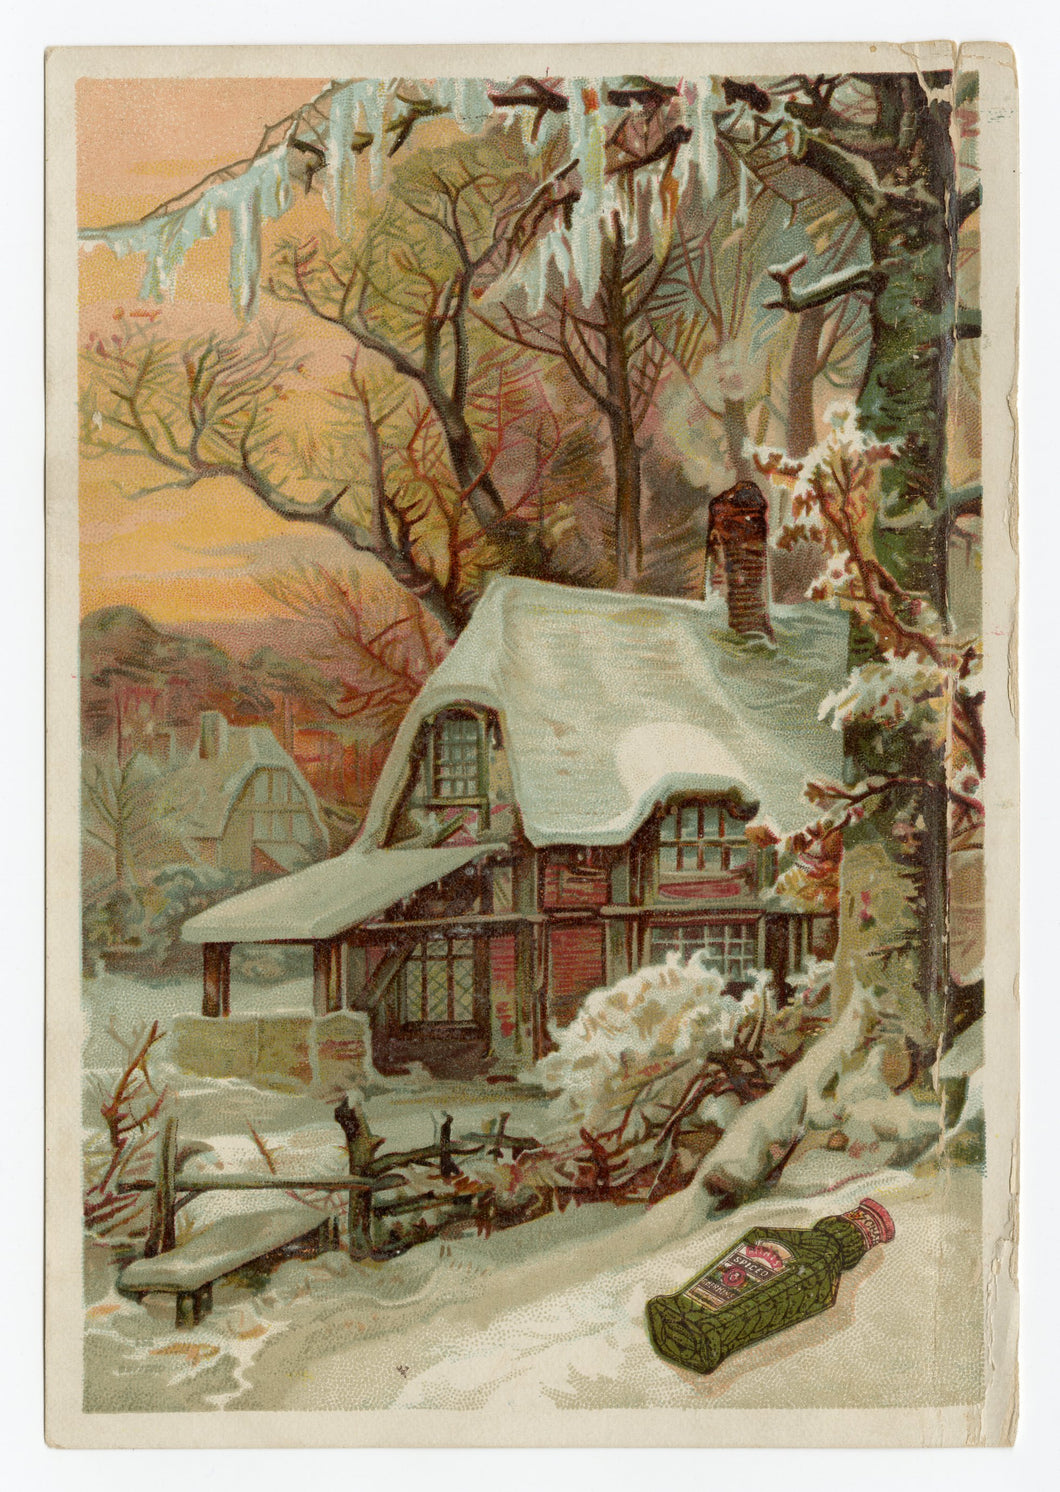 Antique Victorian Heinz's Extra Cider Vinegar Trade Card || Cottage in Snow